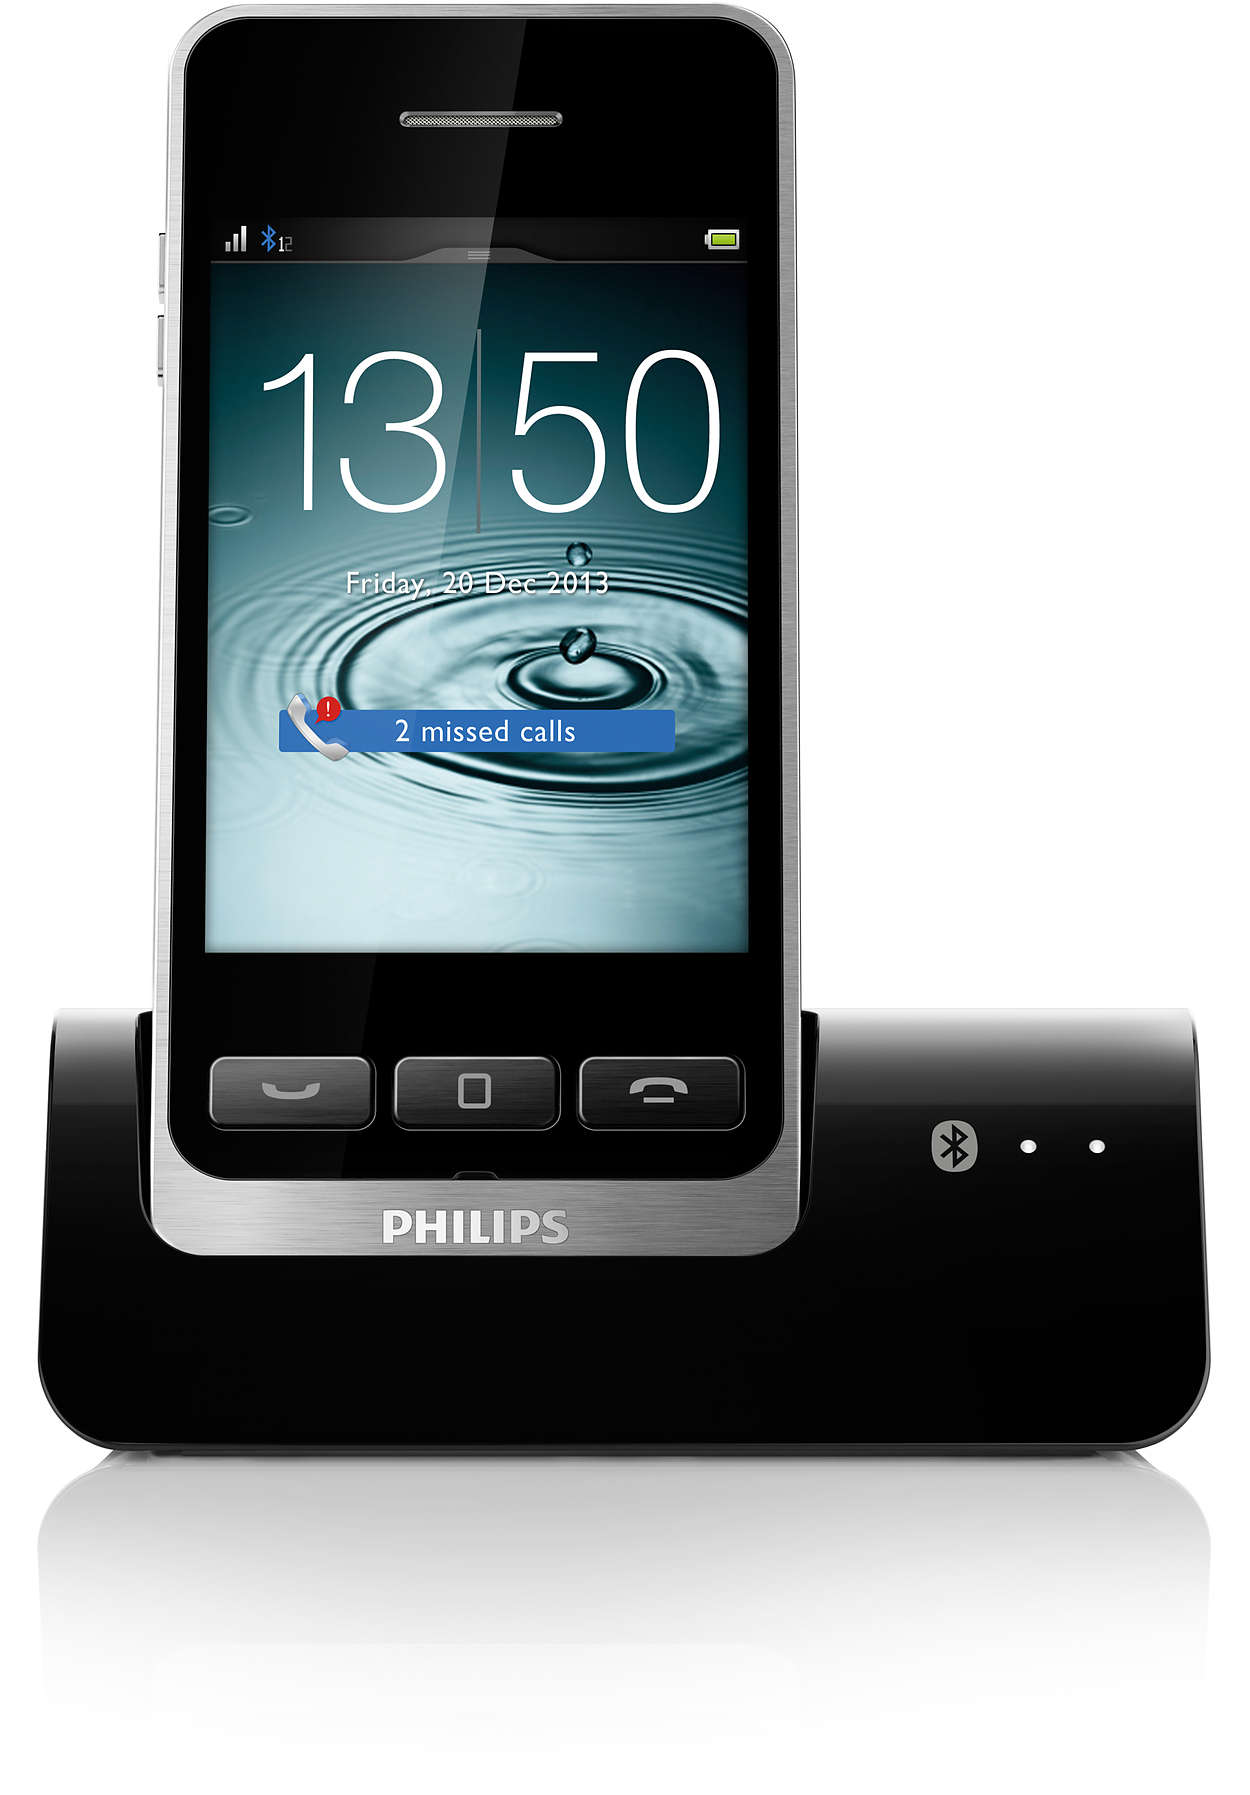 digitales schnurlostelefon mit mobilelink s10 38 philips. Black Bedroom Furniture Sets. Home Design Ideas